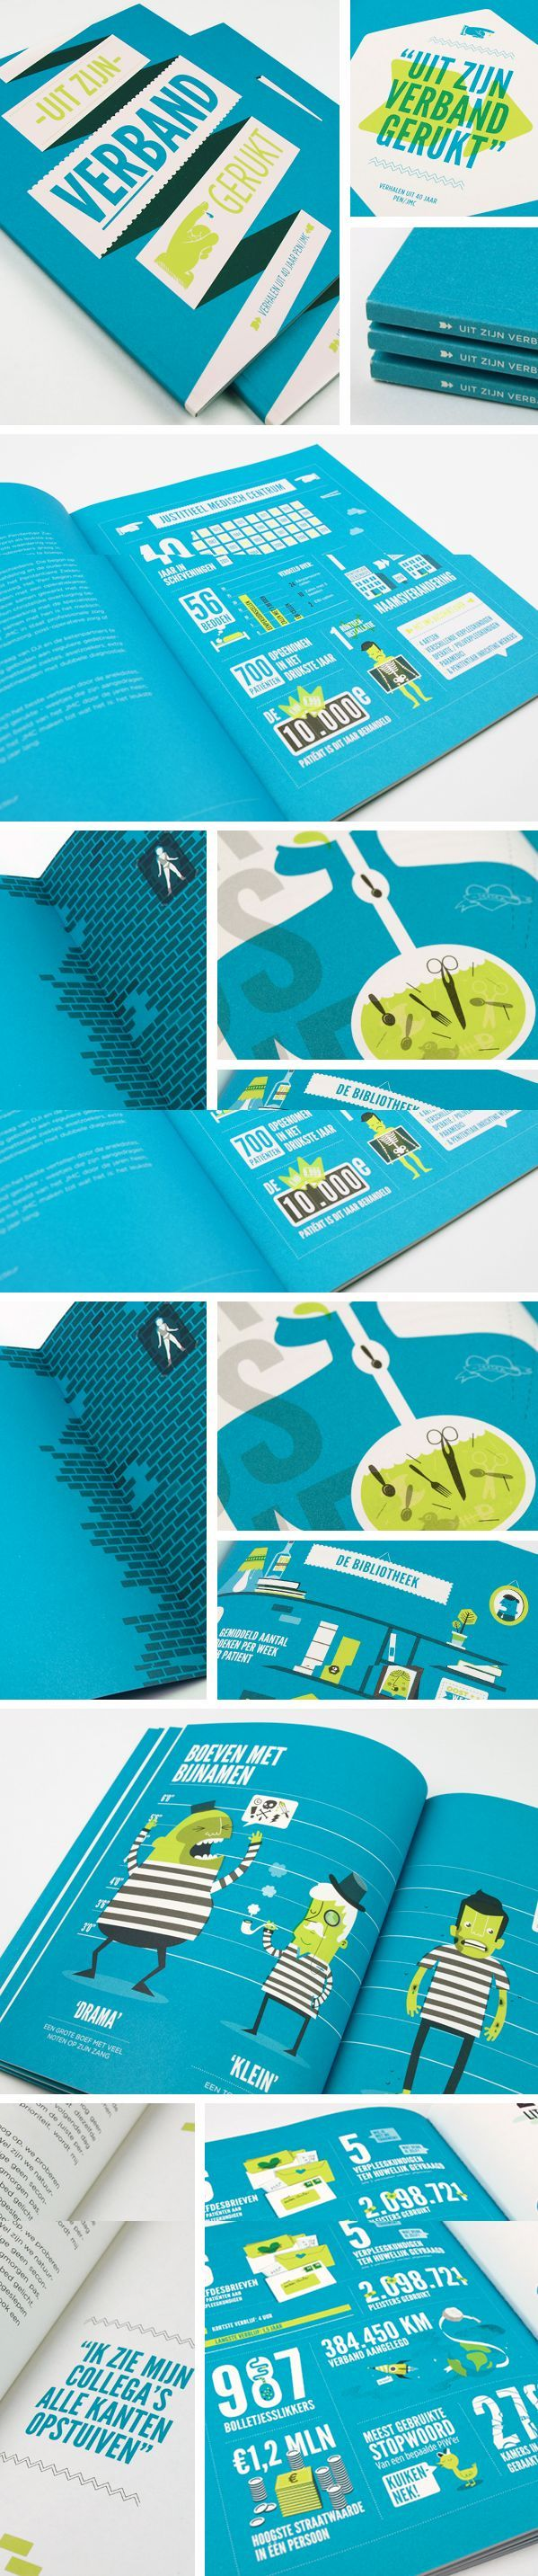 Uit Zijn Verband Gerukt Data Visualization and Infographic Publication Design (this person has rad skills with colour...)  #infographics